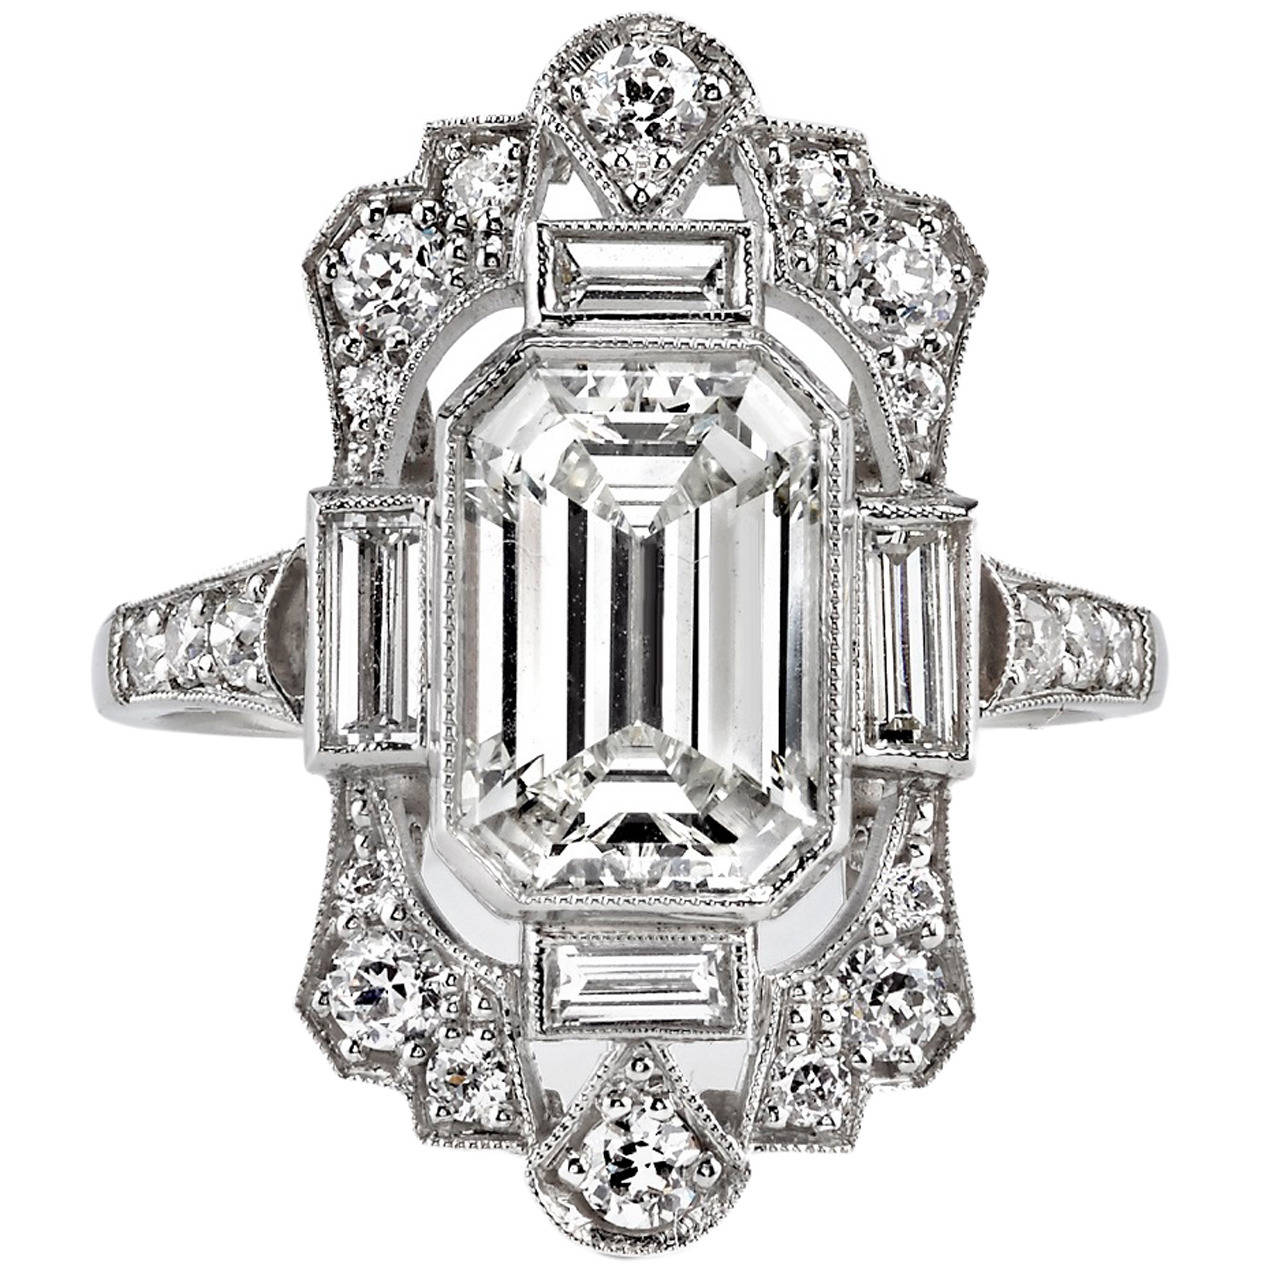 2 03 Carat GIA Cert Emerald Cut Diamond Platinum Engagement Ring For Sale at